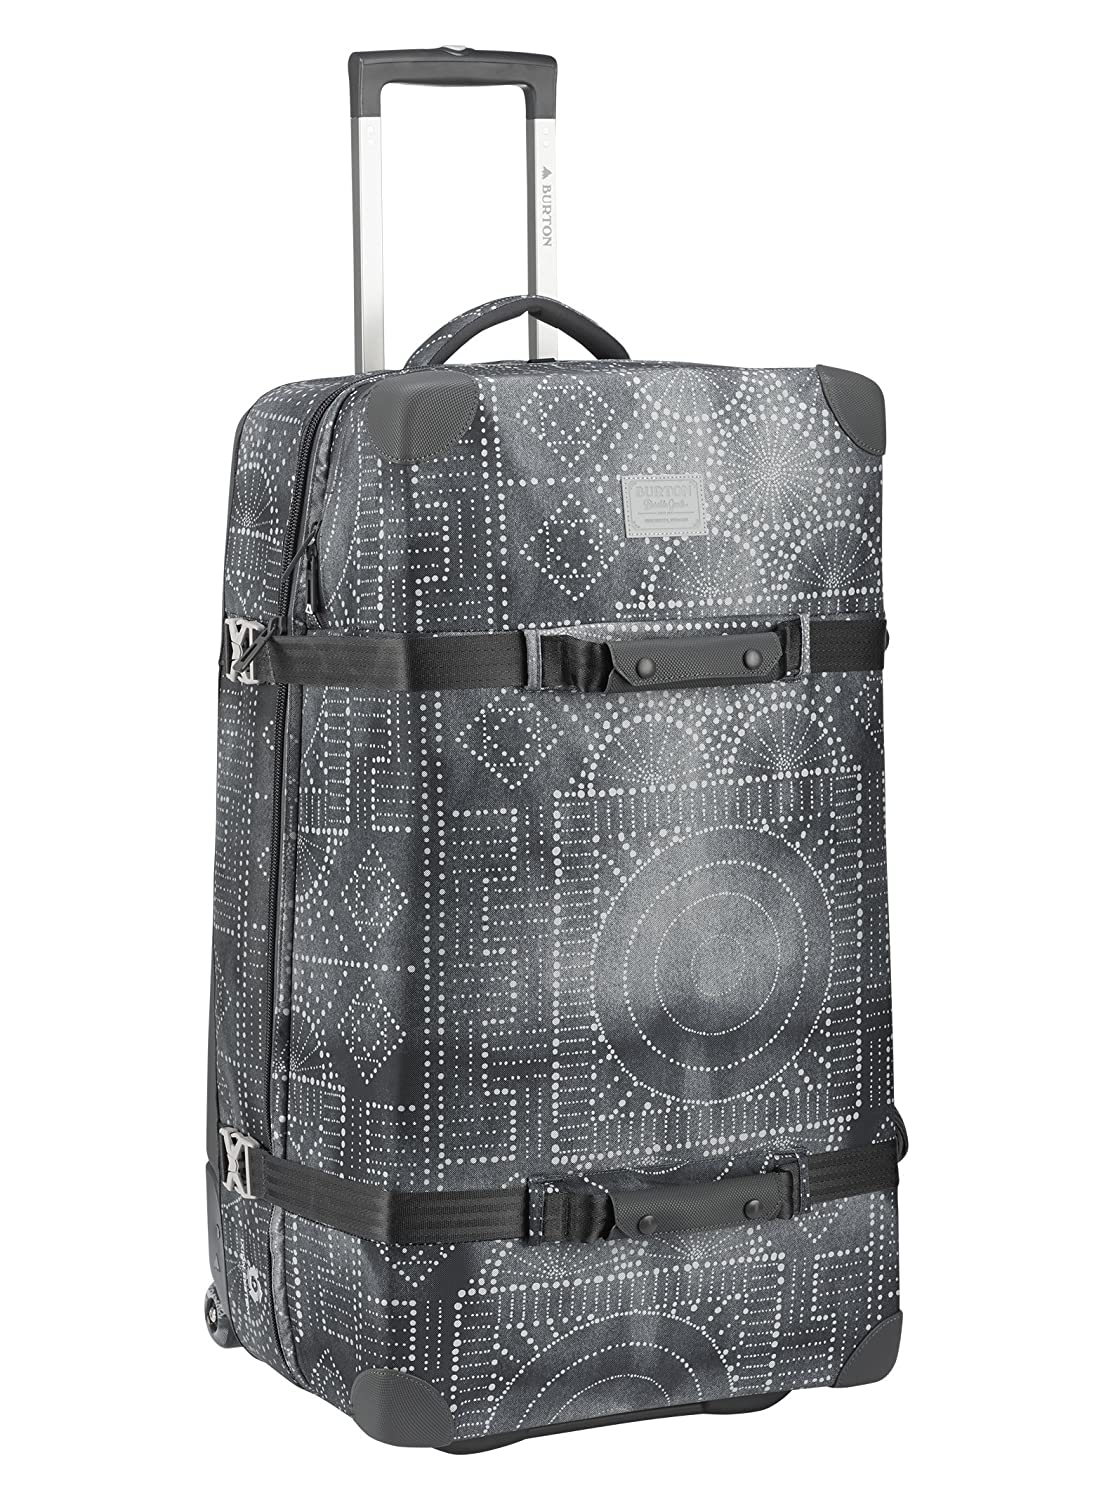 622ebba31e Burton Wheelie Sub Travel Bag, Bandotta Print: Amazon.co.uk: Sports ...